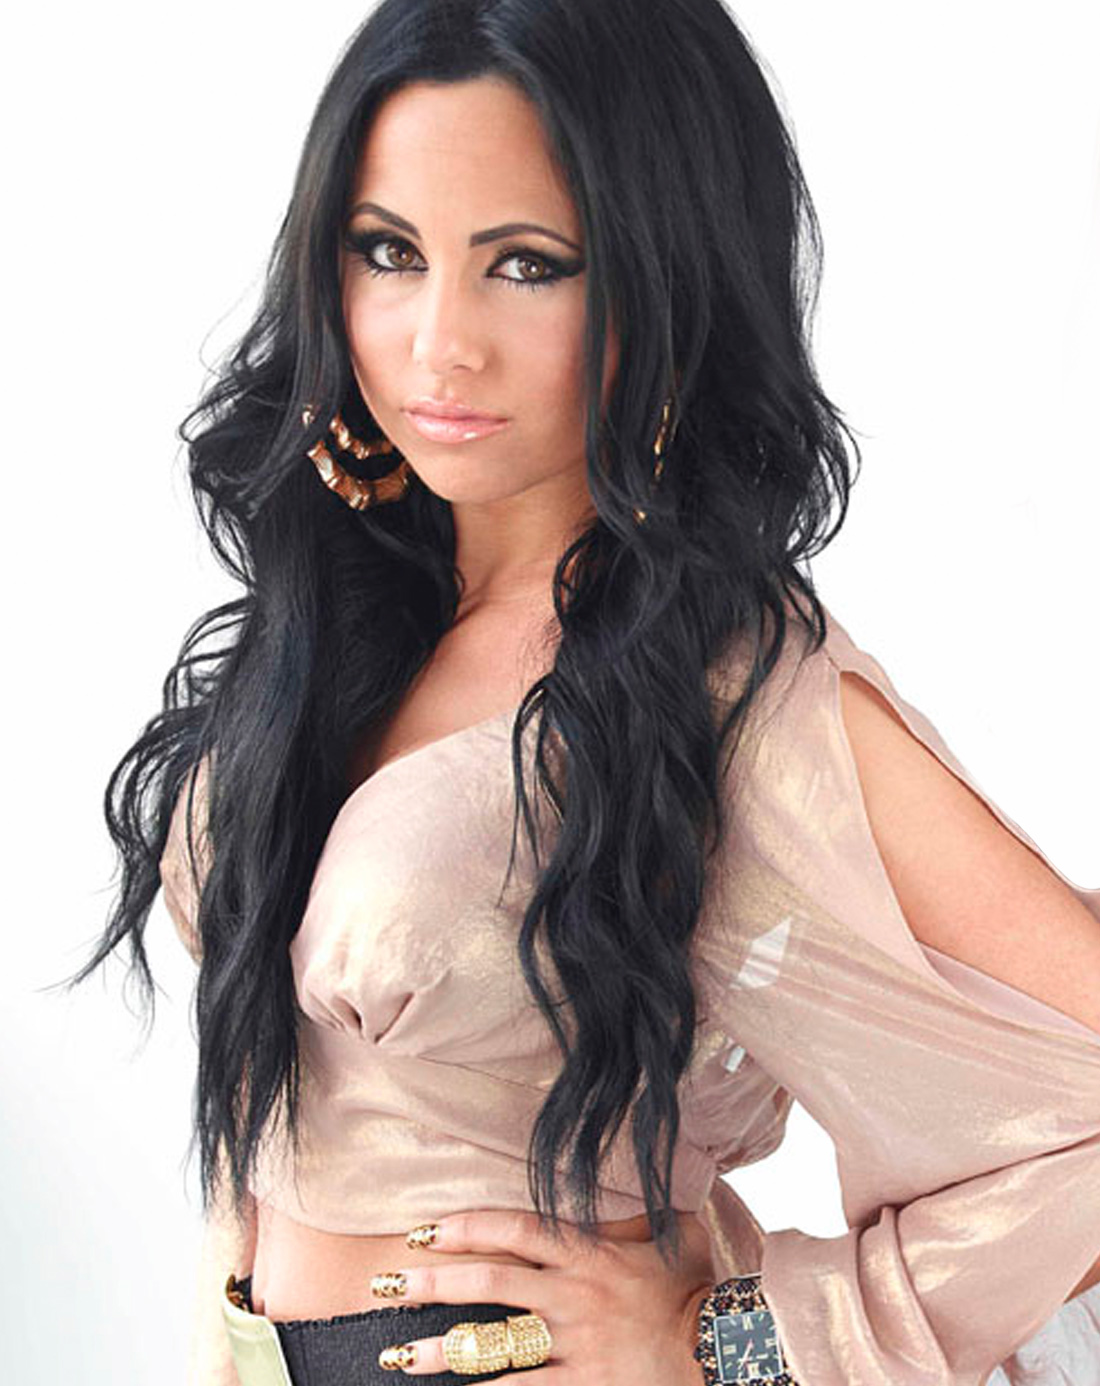 Jerseylicious now olivia The Cast